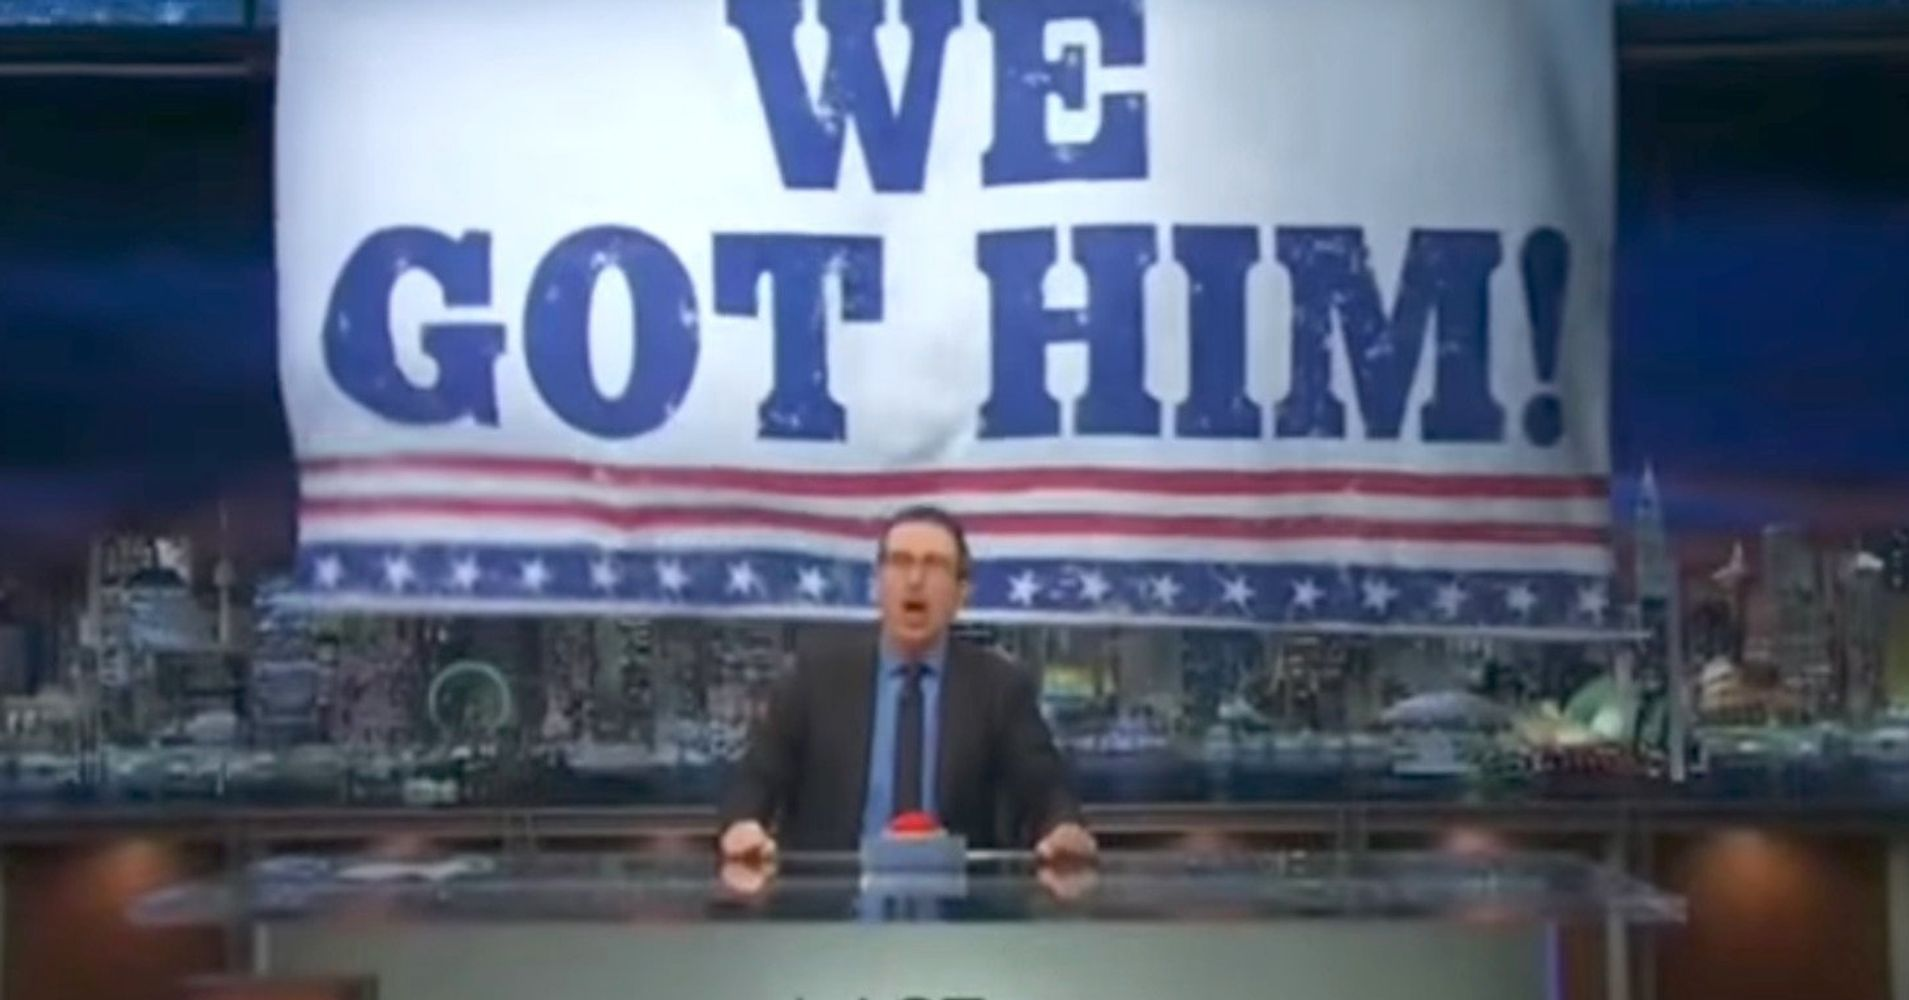 John Oliver Calls Out 'Horribly Racist' Trump, Then ...